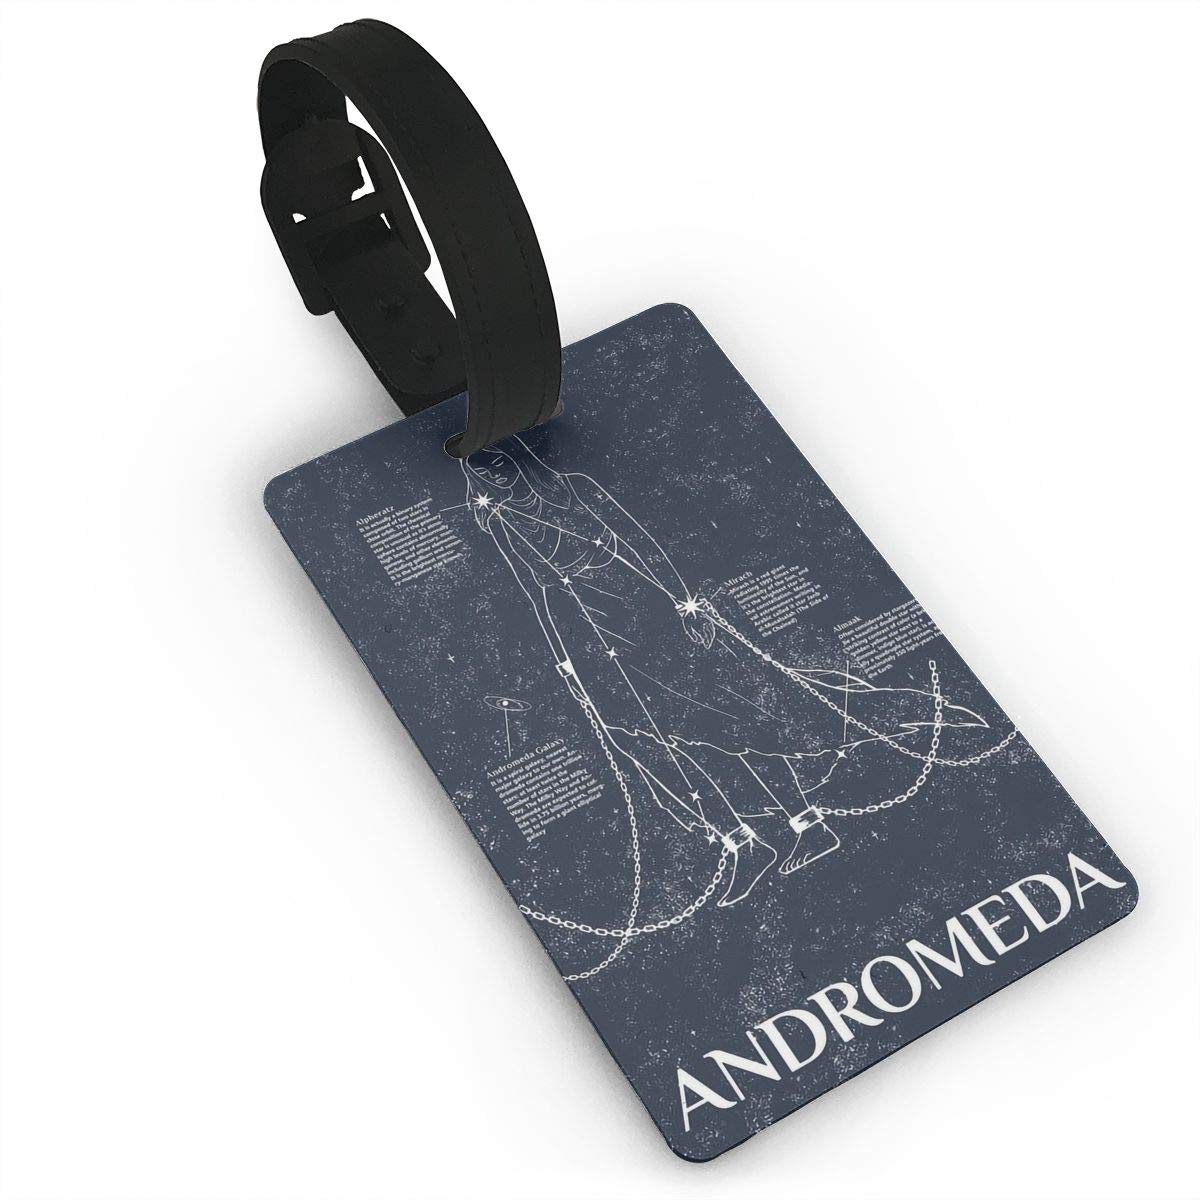 2 Pack Luggage Tags Constellation Andromeda Cruise Luggage Tag For Suitcase Bag Accessories